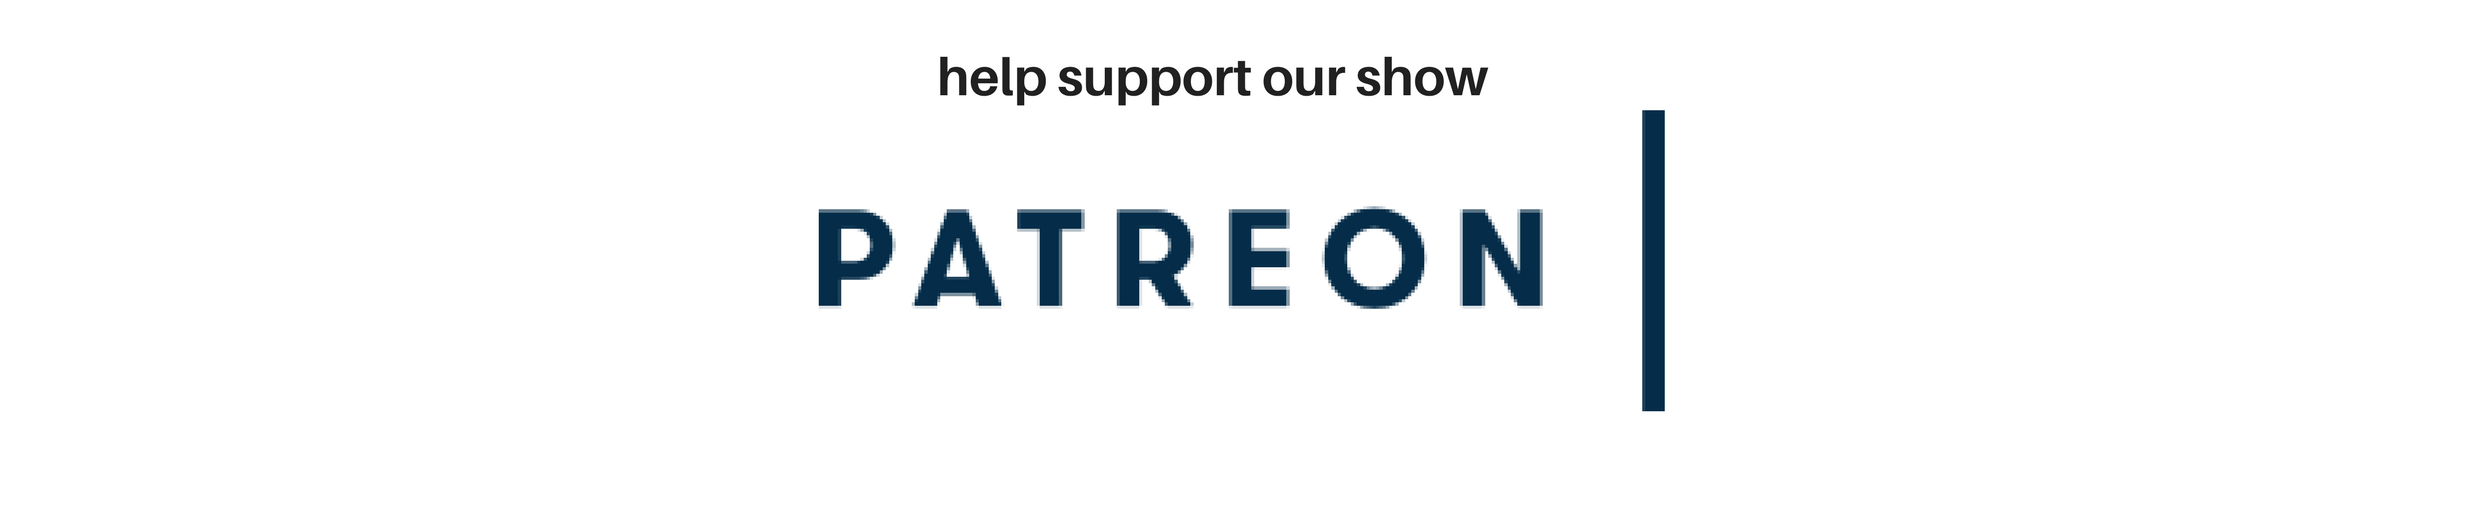 Support the show.png